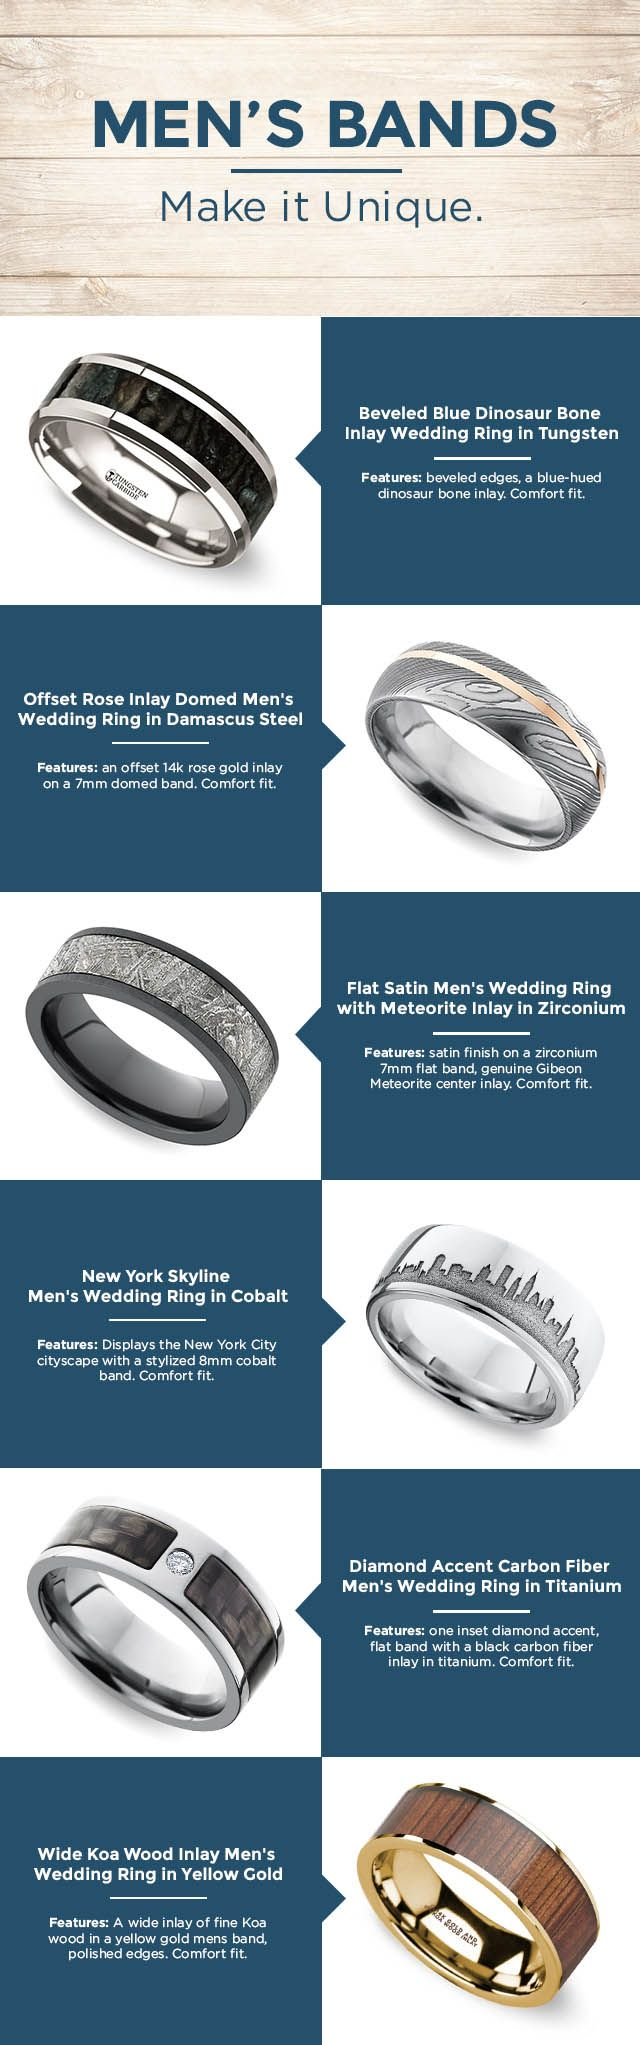 men wedding bands dinosaur wedding band 25 Best Ideas about Men Wedding Bands on Pinterest Tungsten mens rings Groom ring and Mens wedding rings tungsten